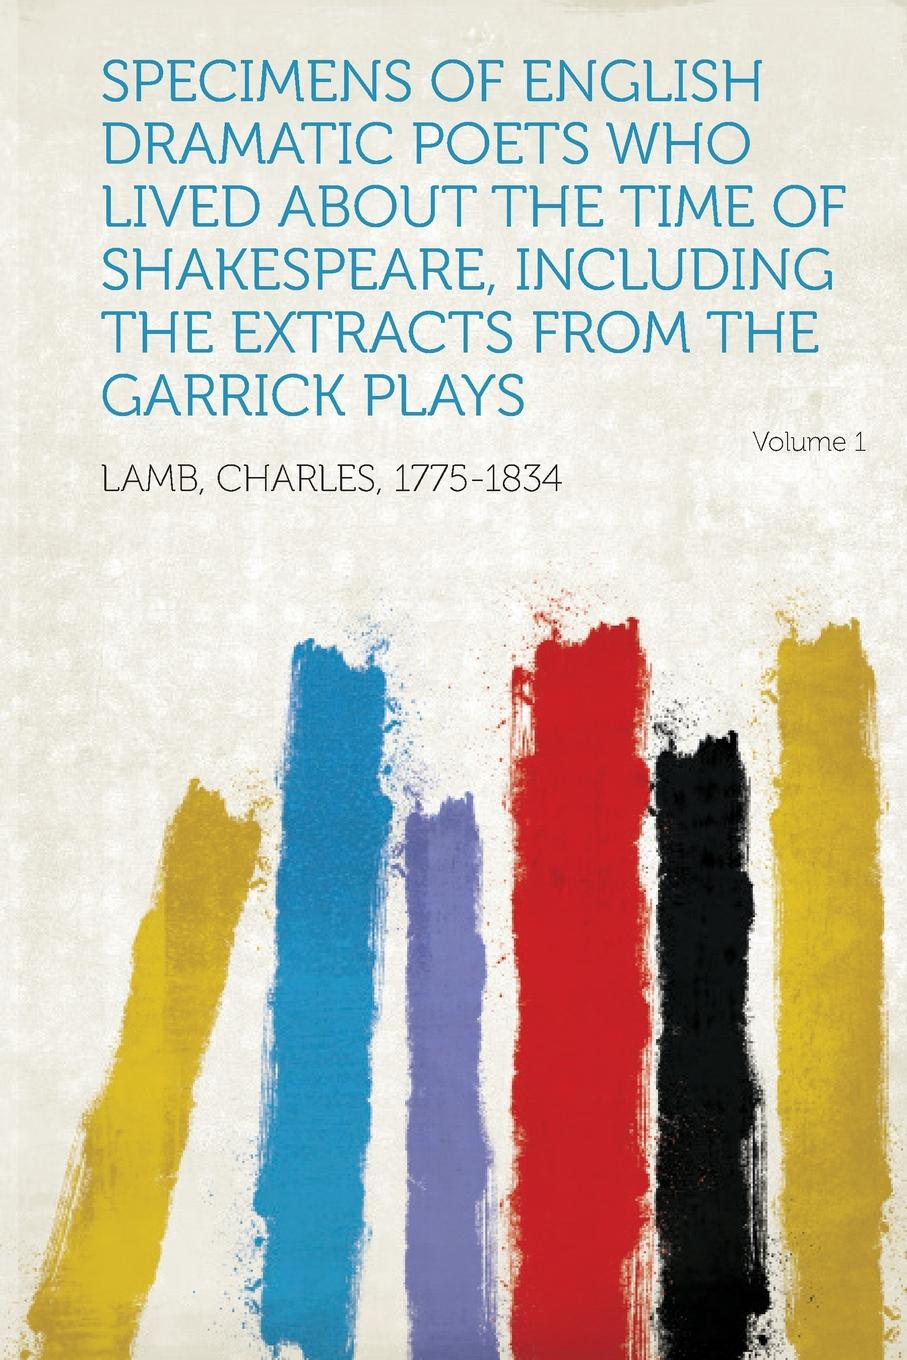 Lamb Charles Specimens of English Dramatic Poets Who Lived about the Time of Shakespeare, Including the Extracts from the Garrick Plays Volume 1